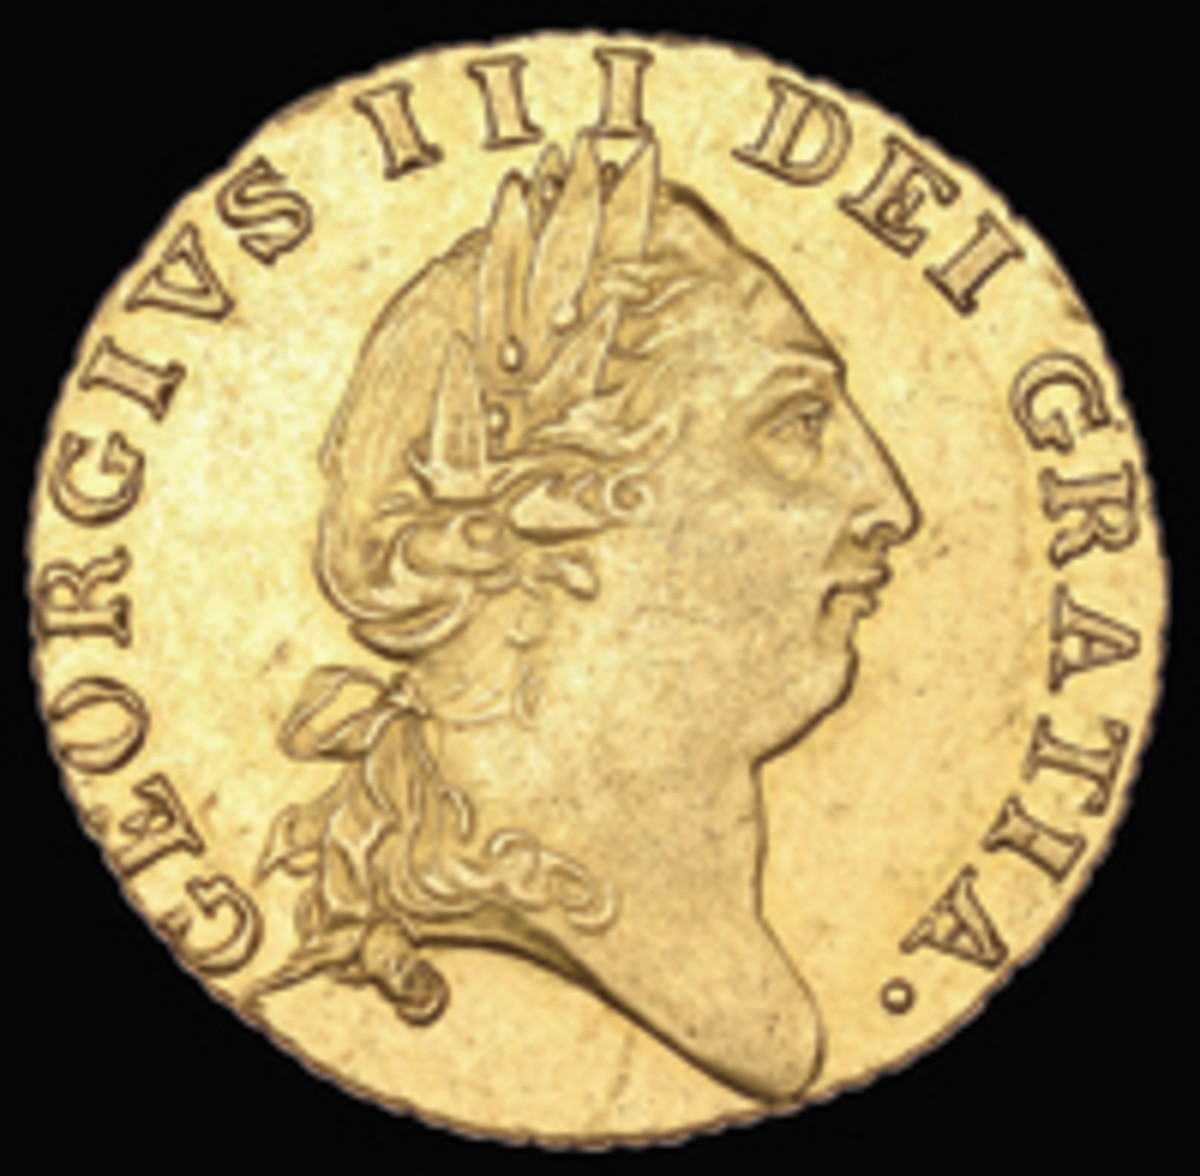 Discovery George III spade guinea of 1788 (cf. KM-609; S-3279) to be offered in EF at DNW's September sale. (Image courtesy DNW)